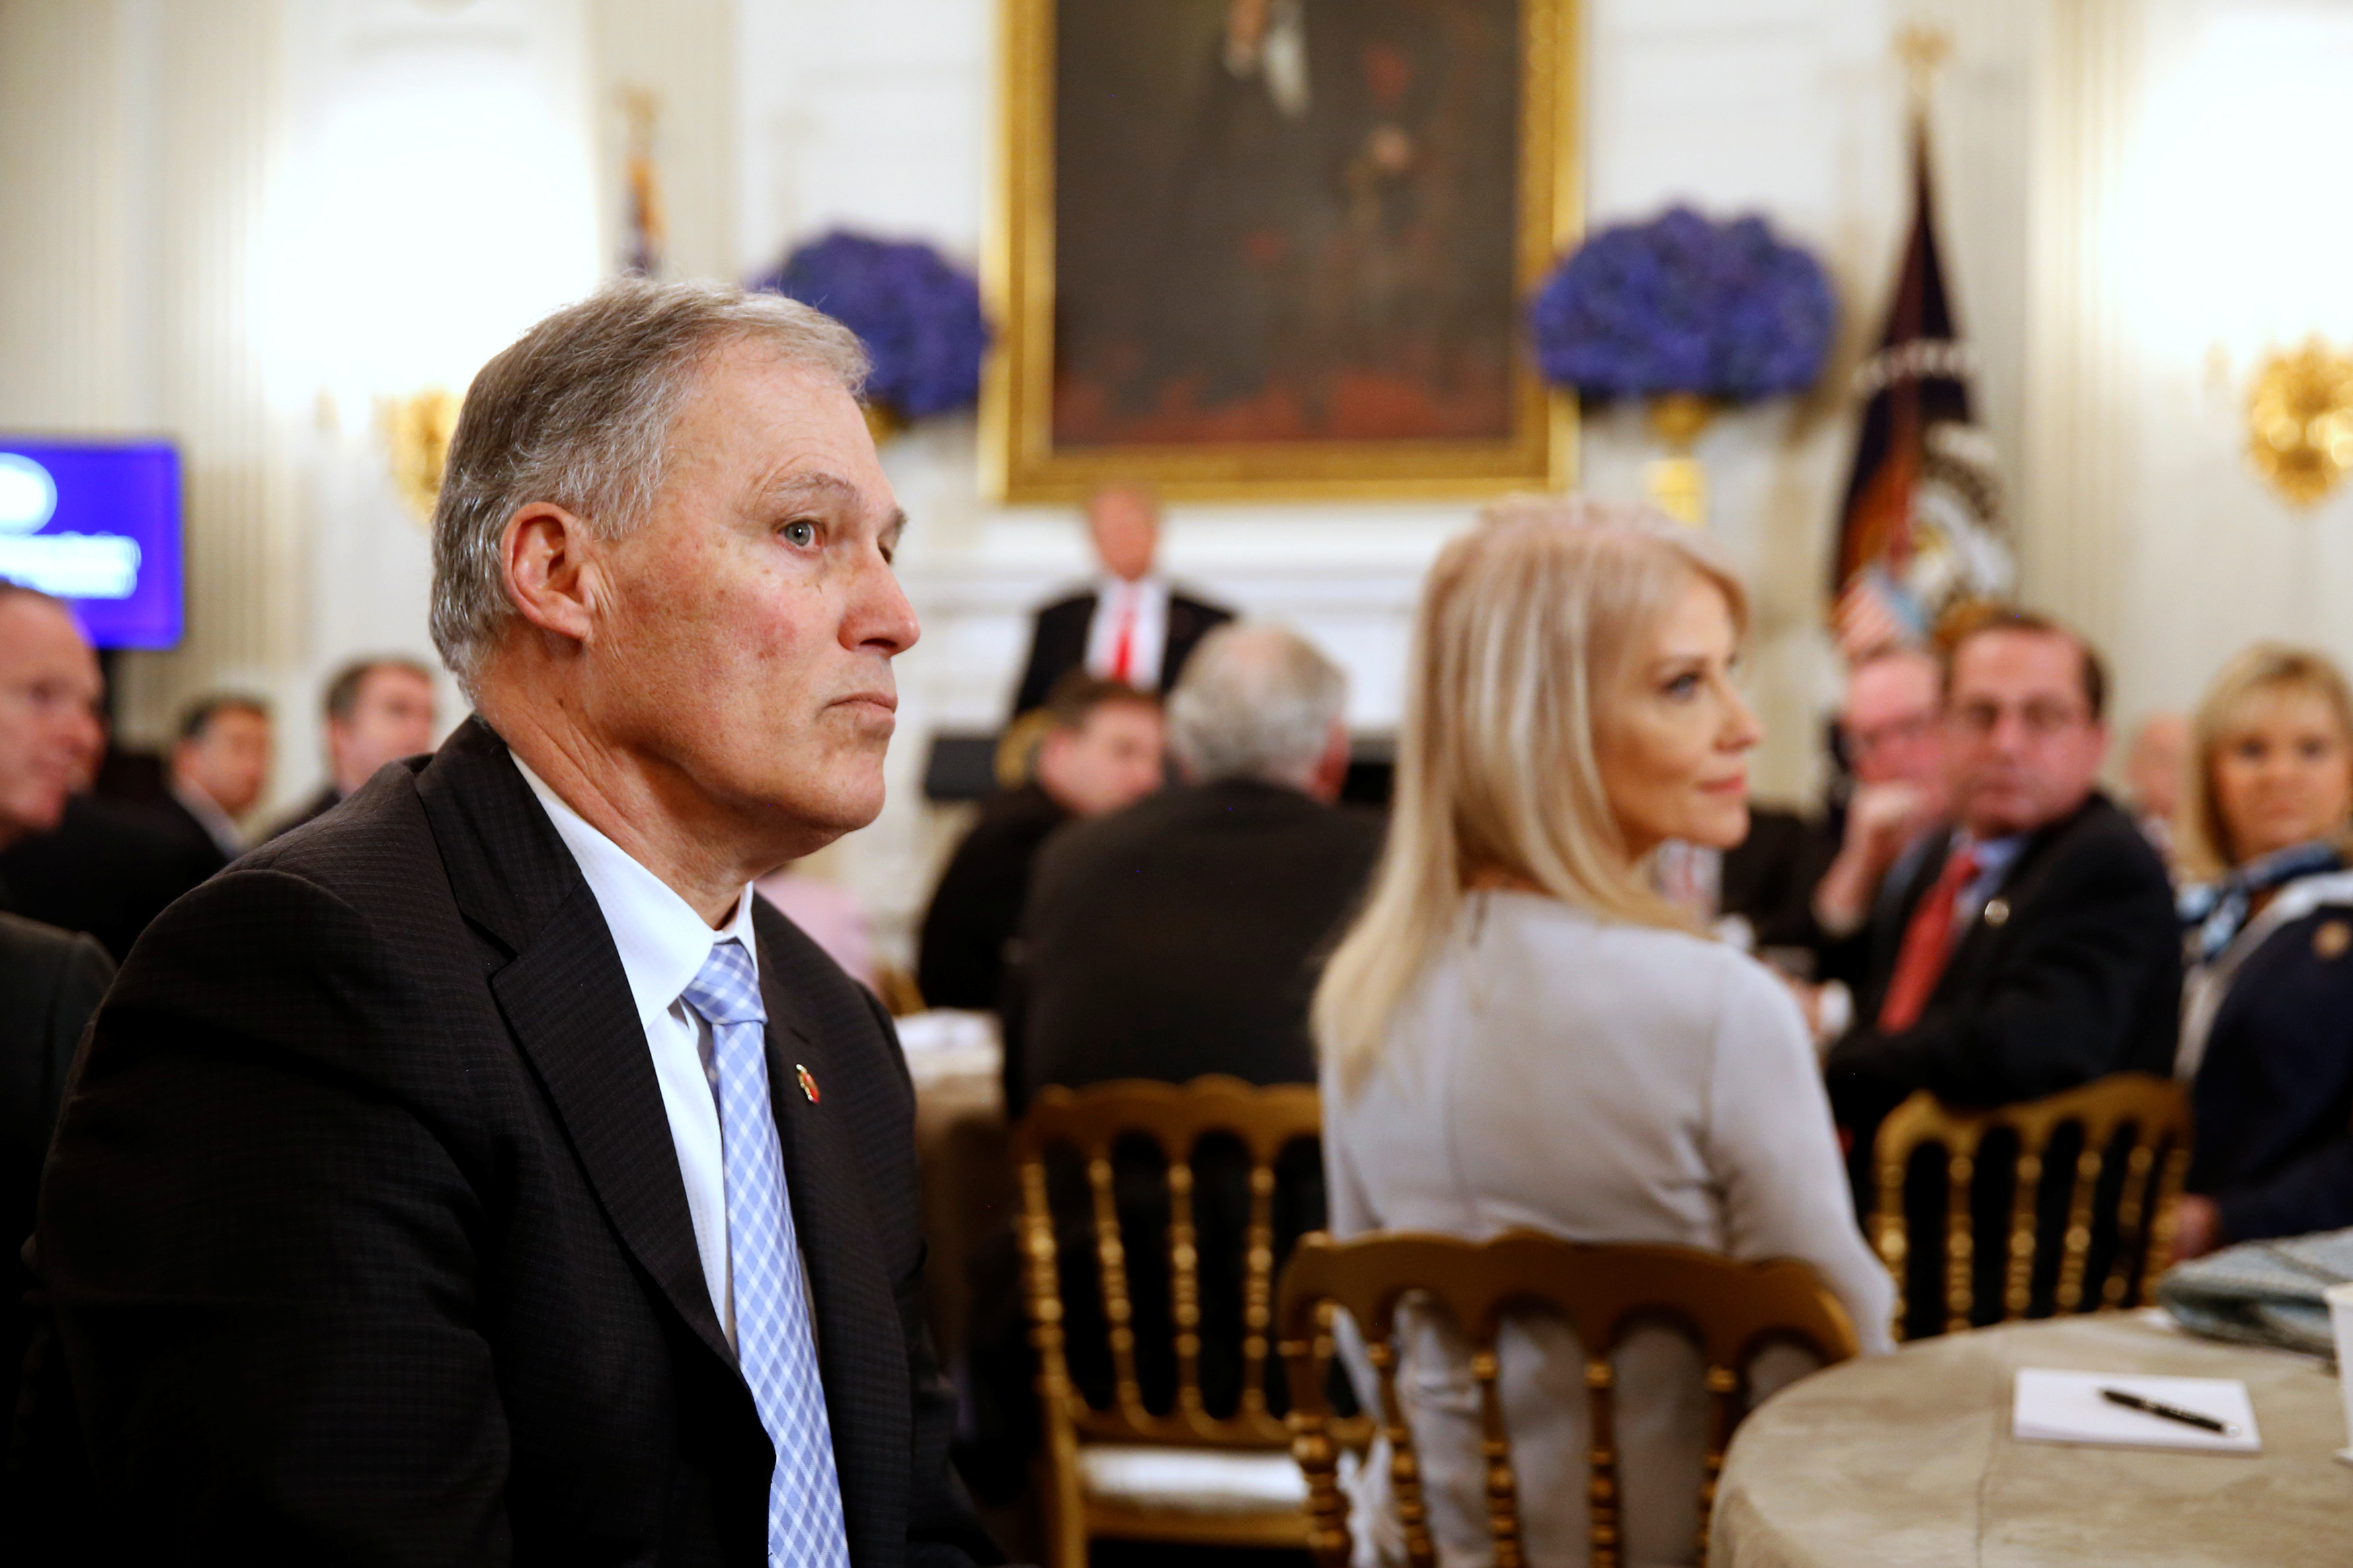 Trump holds a discussion about school shootings with state governors from around the country at the White House in Washington